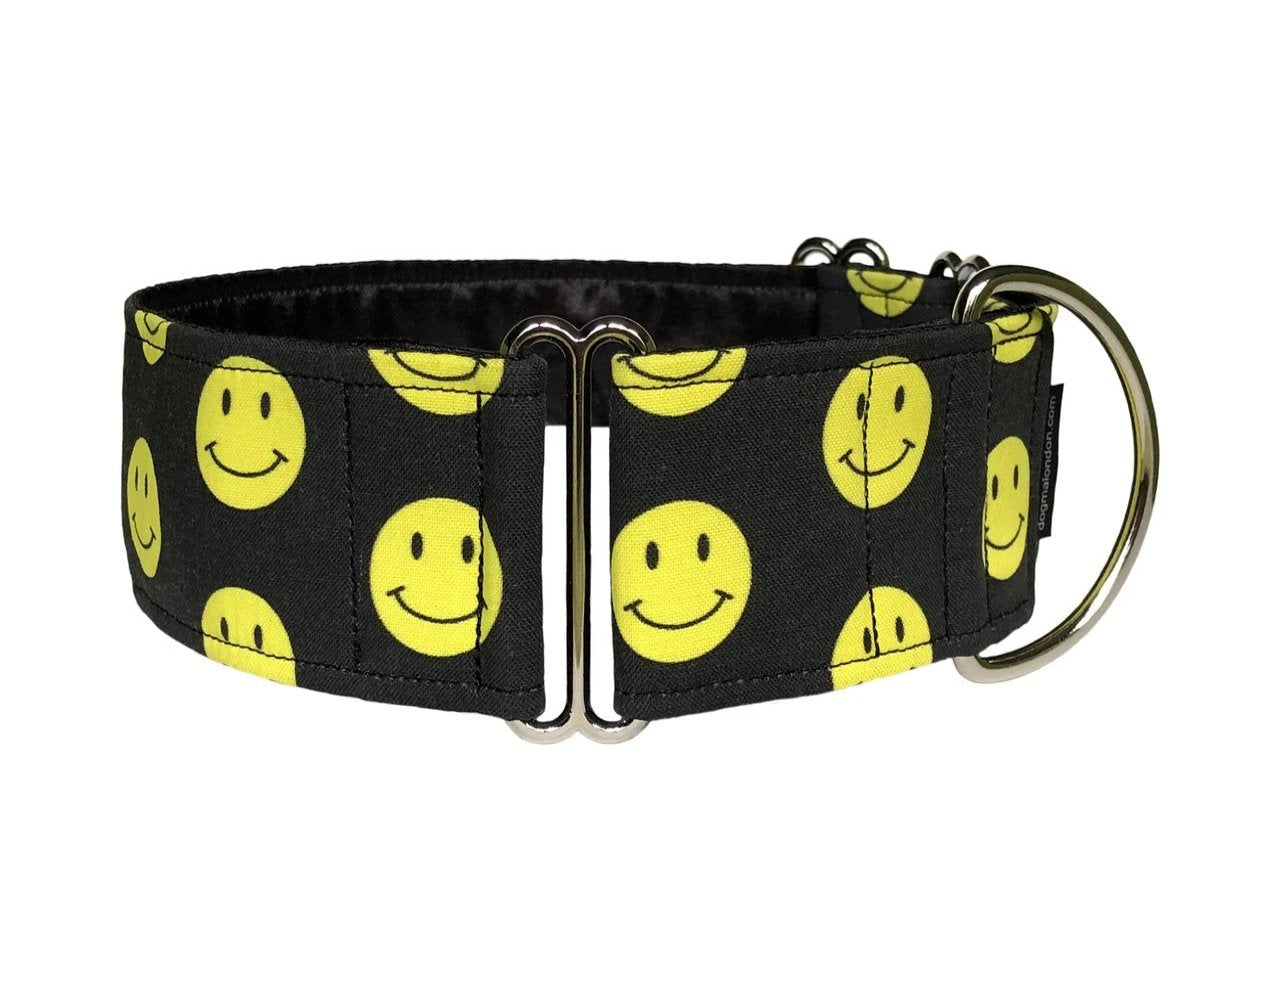 Classic yellow smiley faces make this the perfect collar for the happiest tail-wagger in the house!